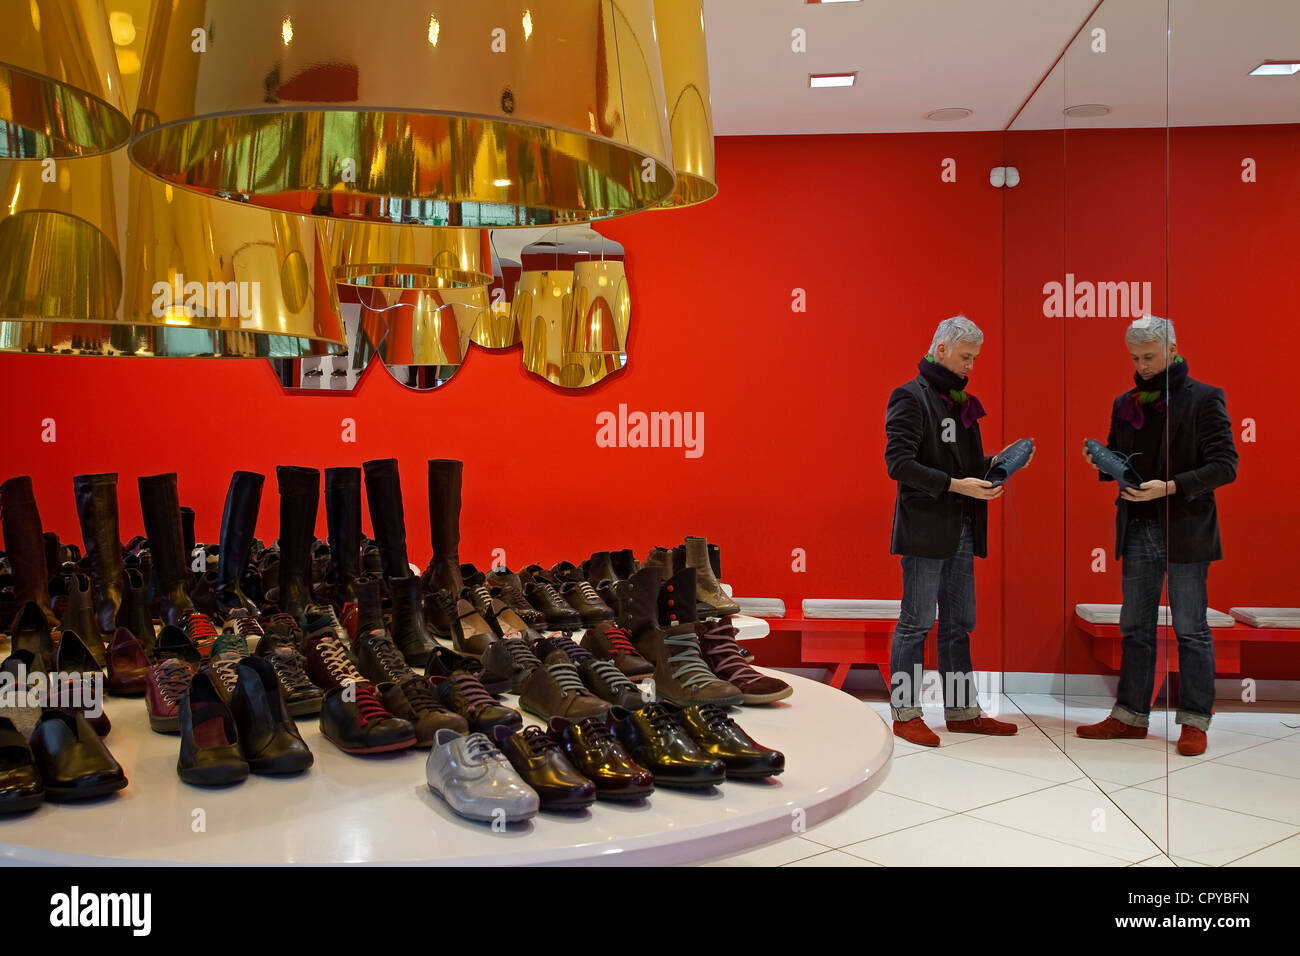 Alamy amp; Images Photos Shoes Camper wxRgqSn